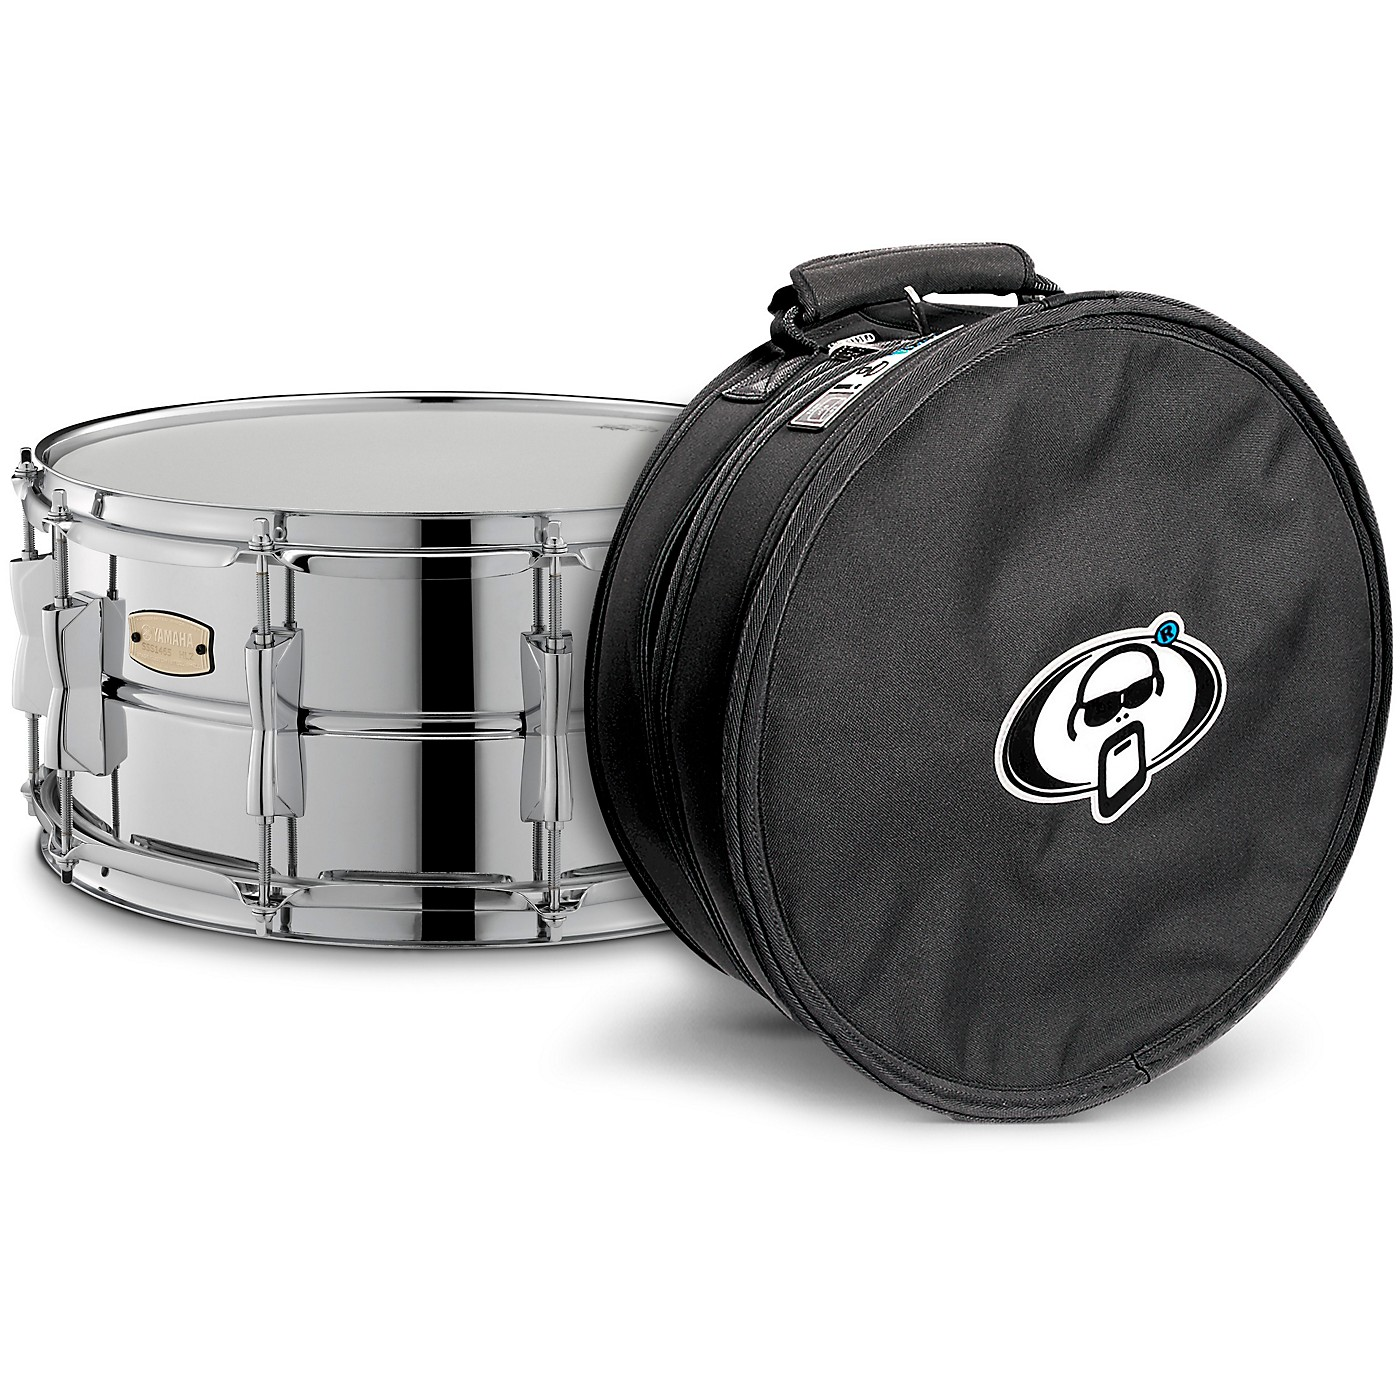 Yamaha Stage Custom Steel Snare with Protection Racket Case thumbnail